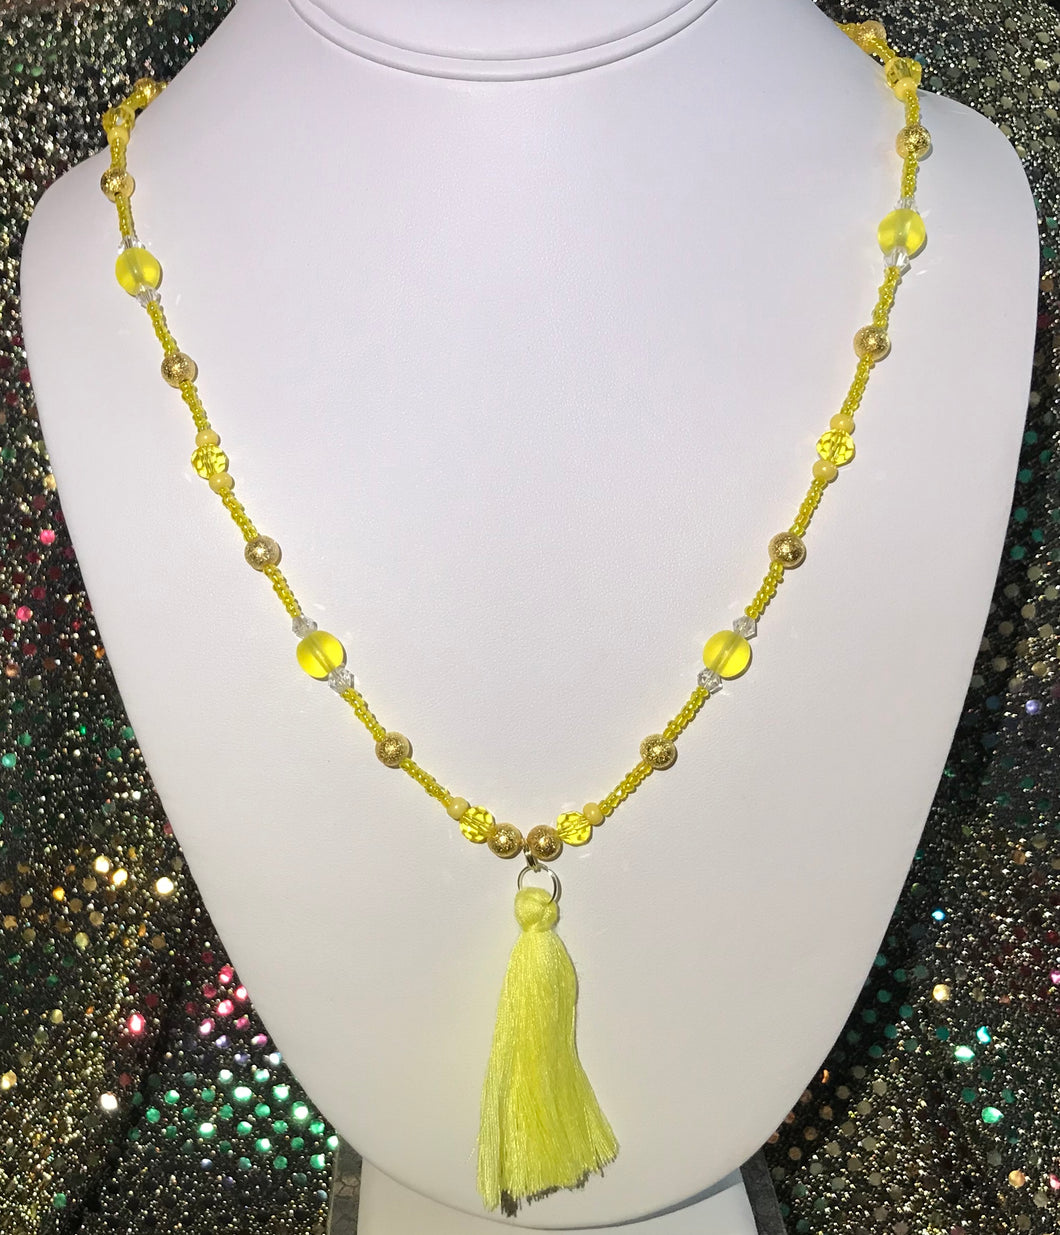 Fringe Benefits - Lemon